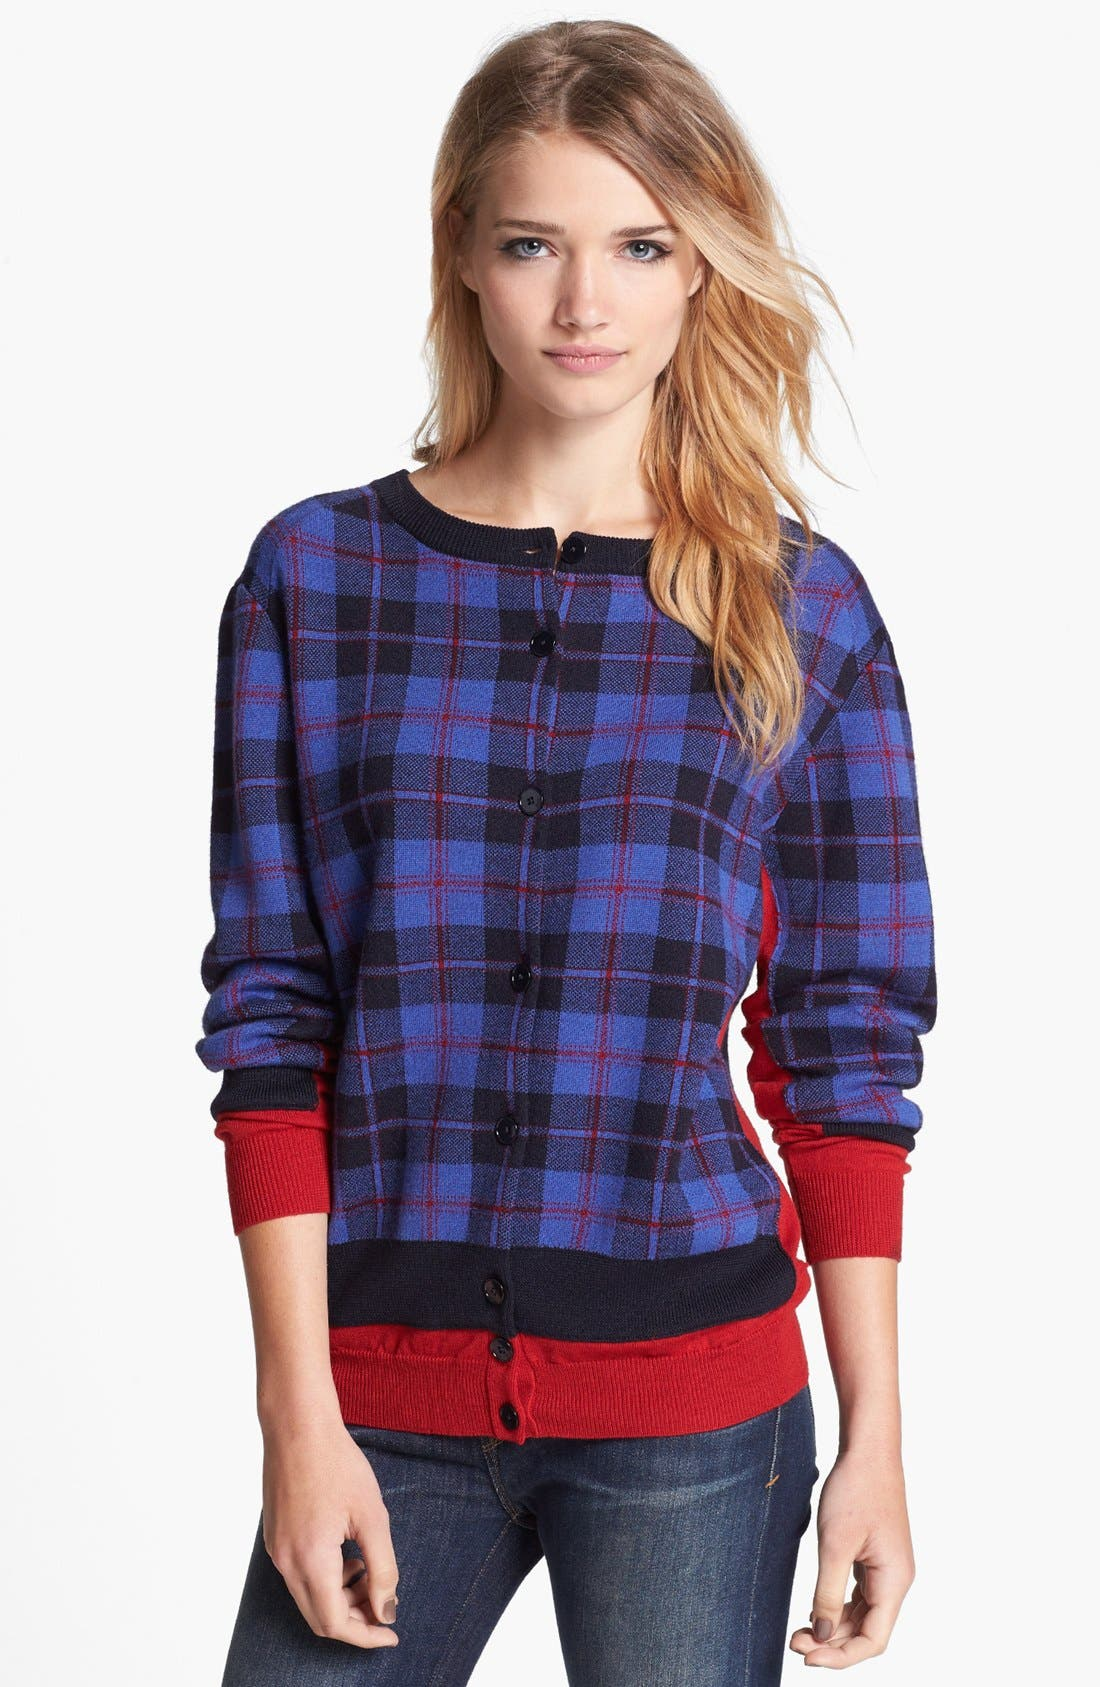 Alternate Image 1 Selected - MARC BY MARC JACOBS 'Aimee' Plaid Sweater